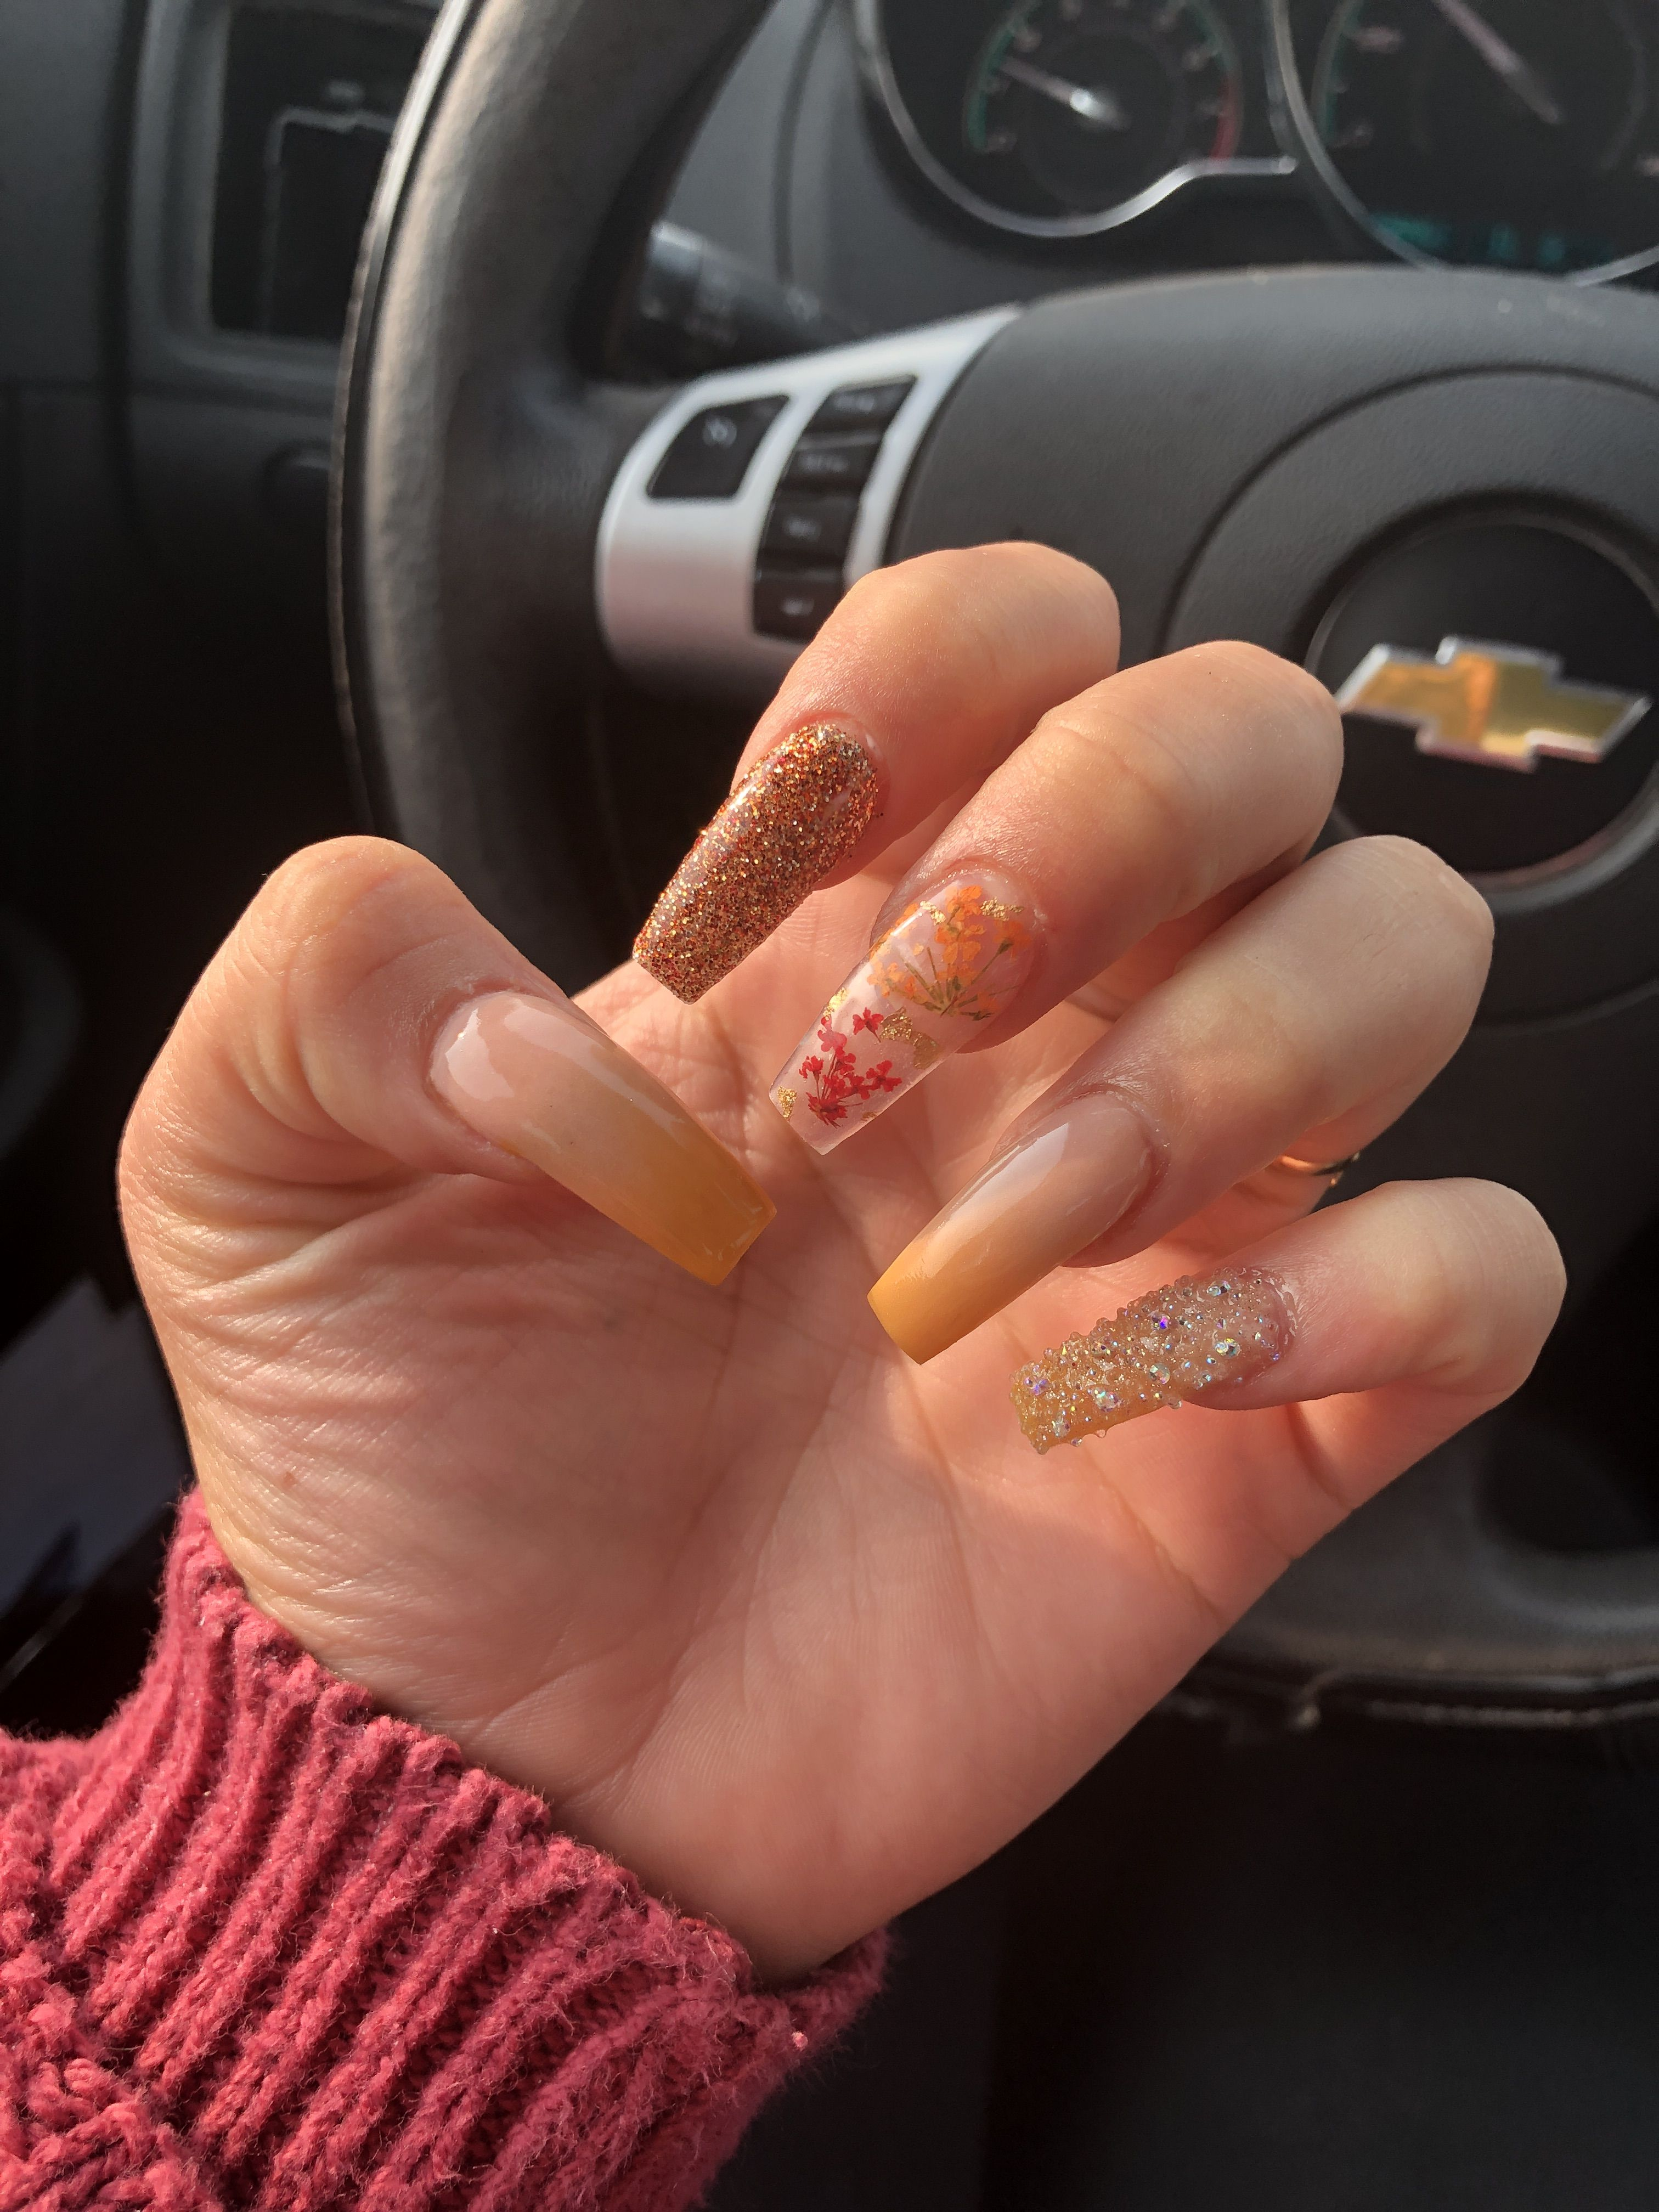 Fall Acrylic Nails Encapsulated Flowers Glitter Ombre Fall Acrylic Nails Autumn Nails Acrylic Nail Designs